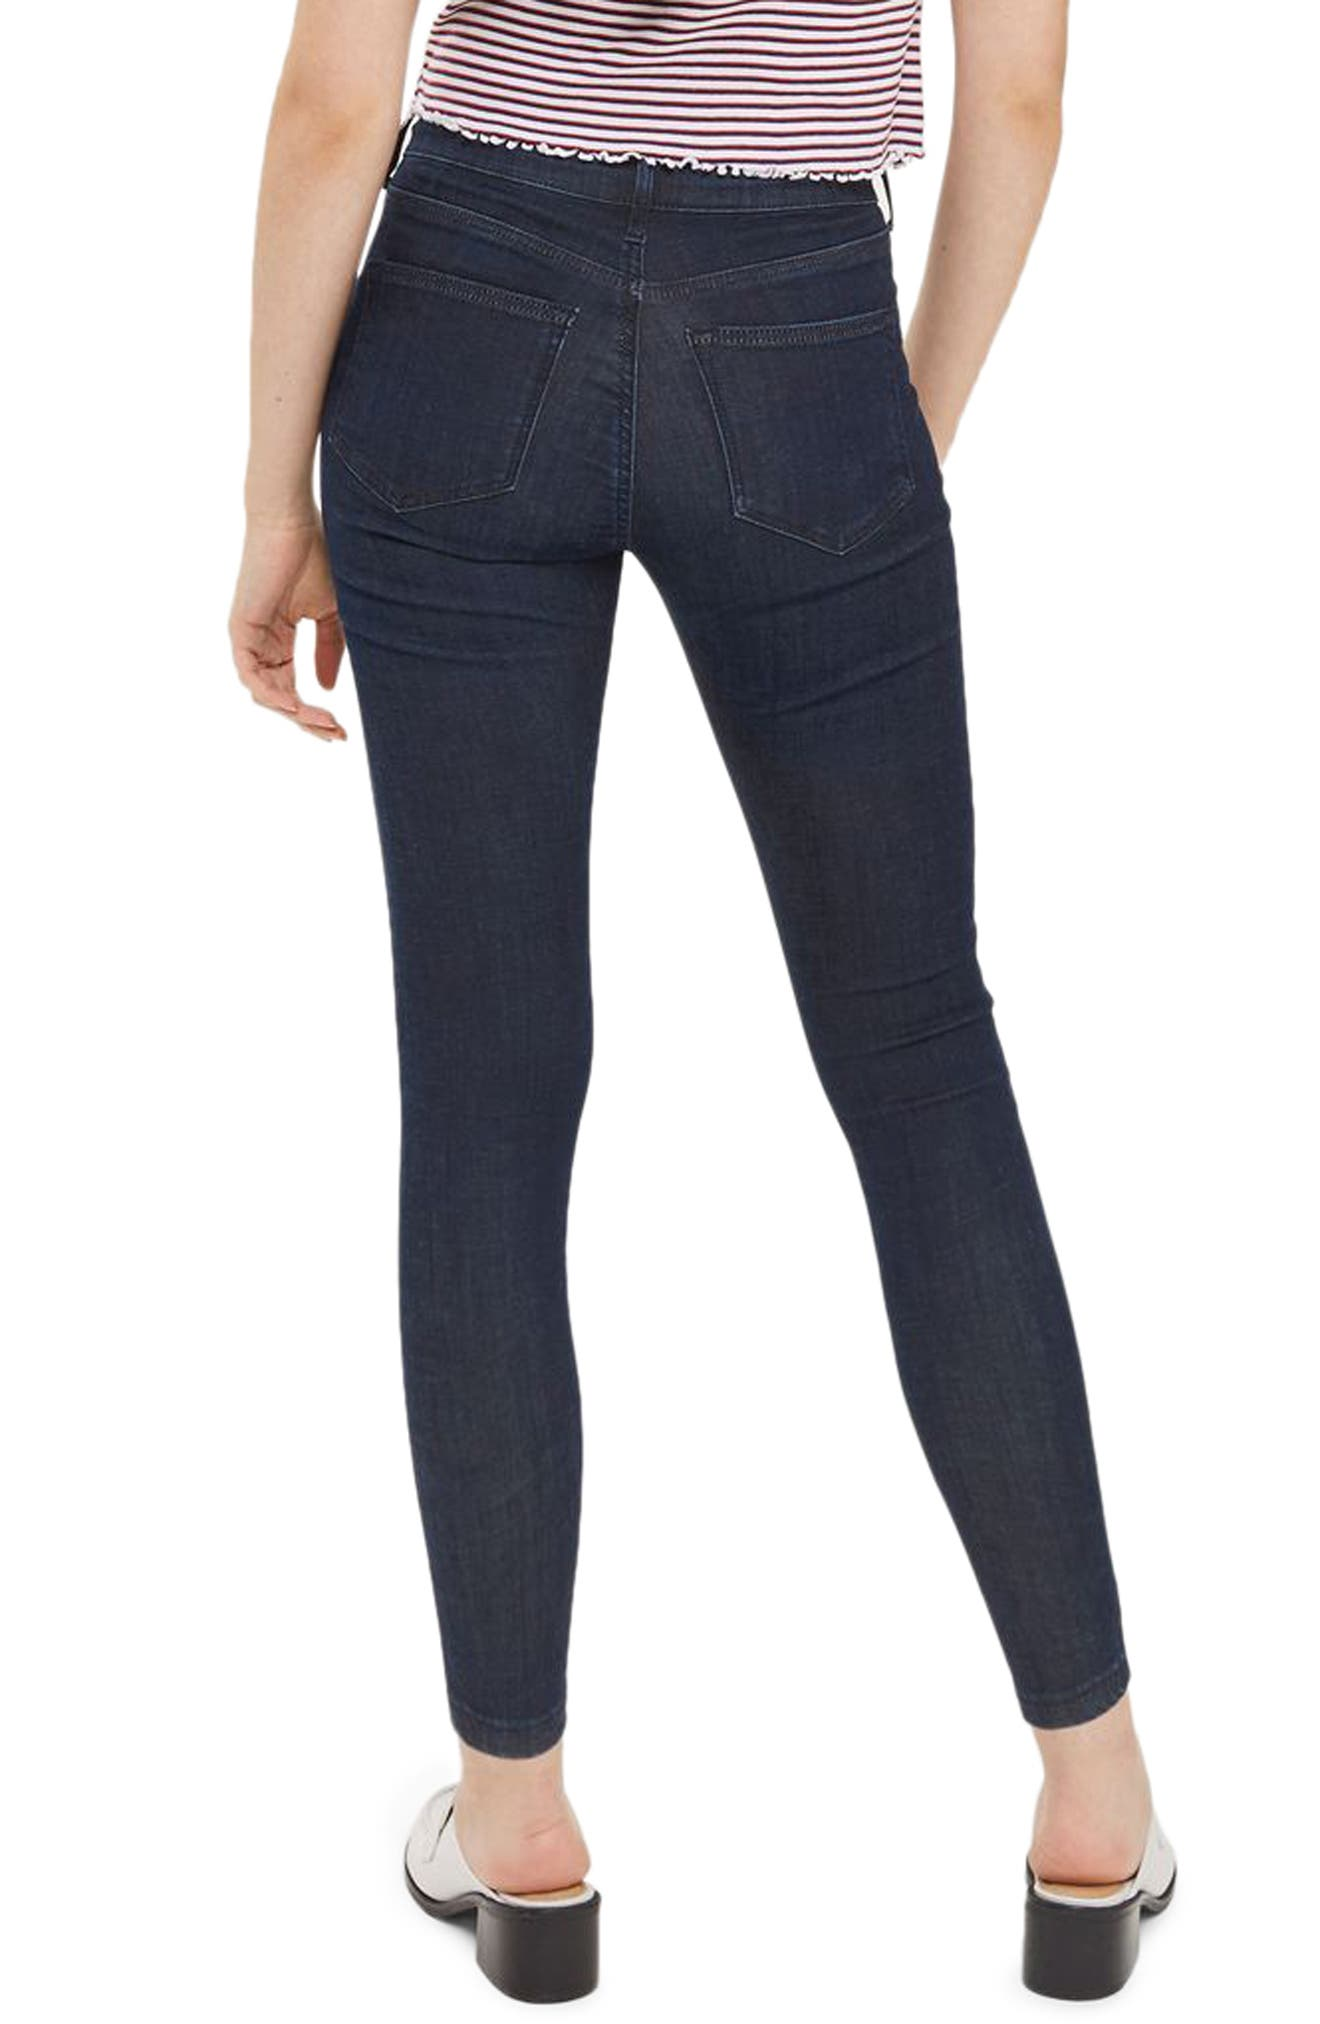 Leigh Skinny Ankle Jeans,                             Alternate thumbnail 3, color,                             Dark Indigo